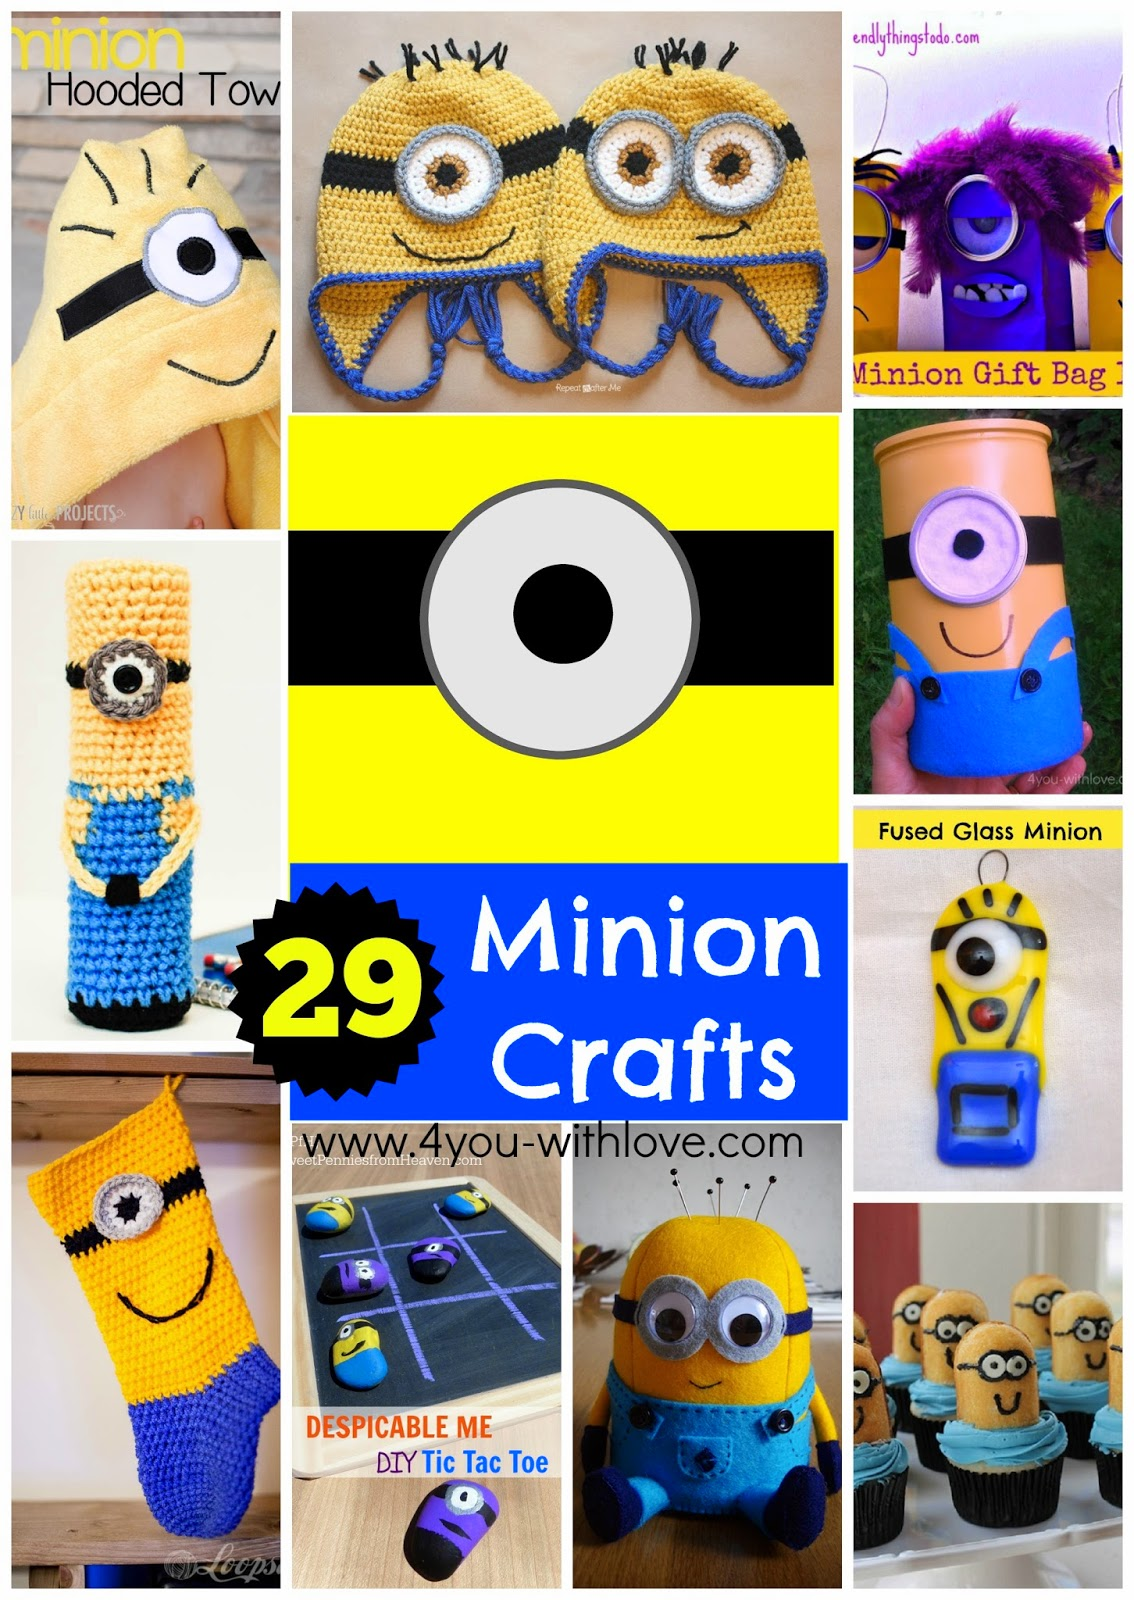 29 Minion Items to Make!